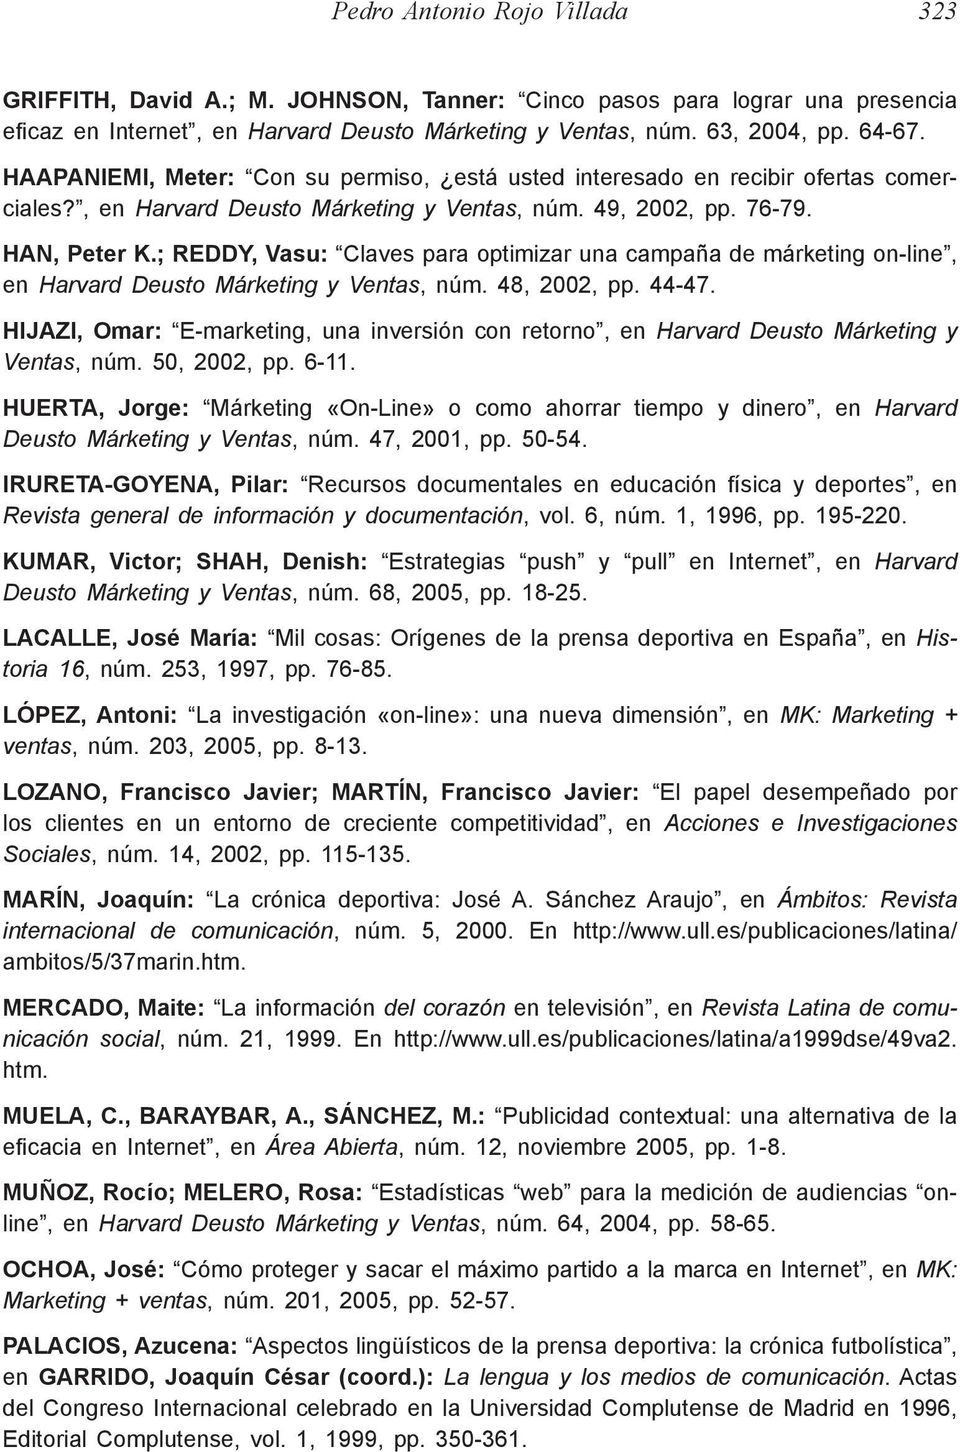 ; REDDY, Vasu: Claves para optimizar una campaña de márketing on-line, en Harvard Deusto Márketing y Ventas, núm. 48, 2002, pp. 44-47.